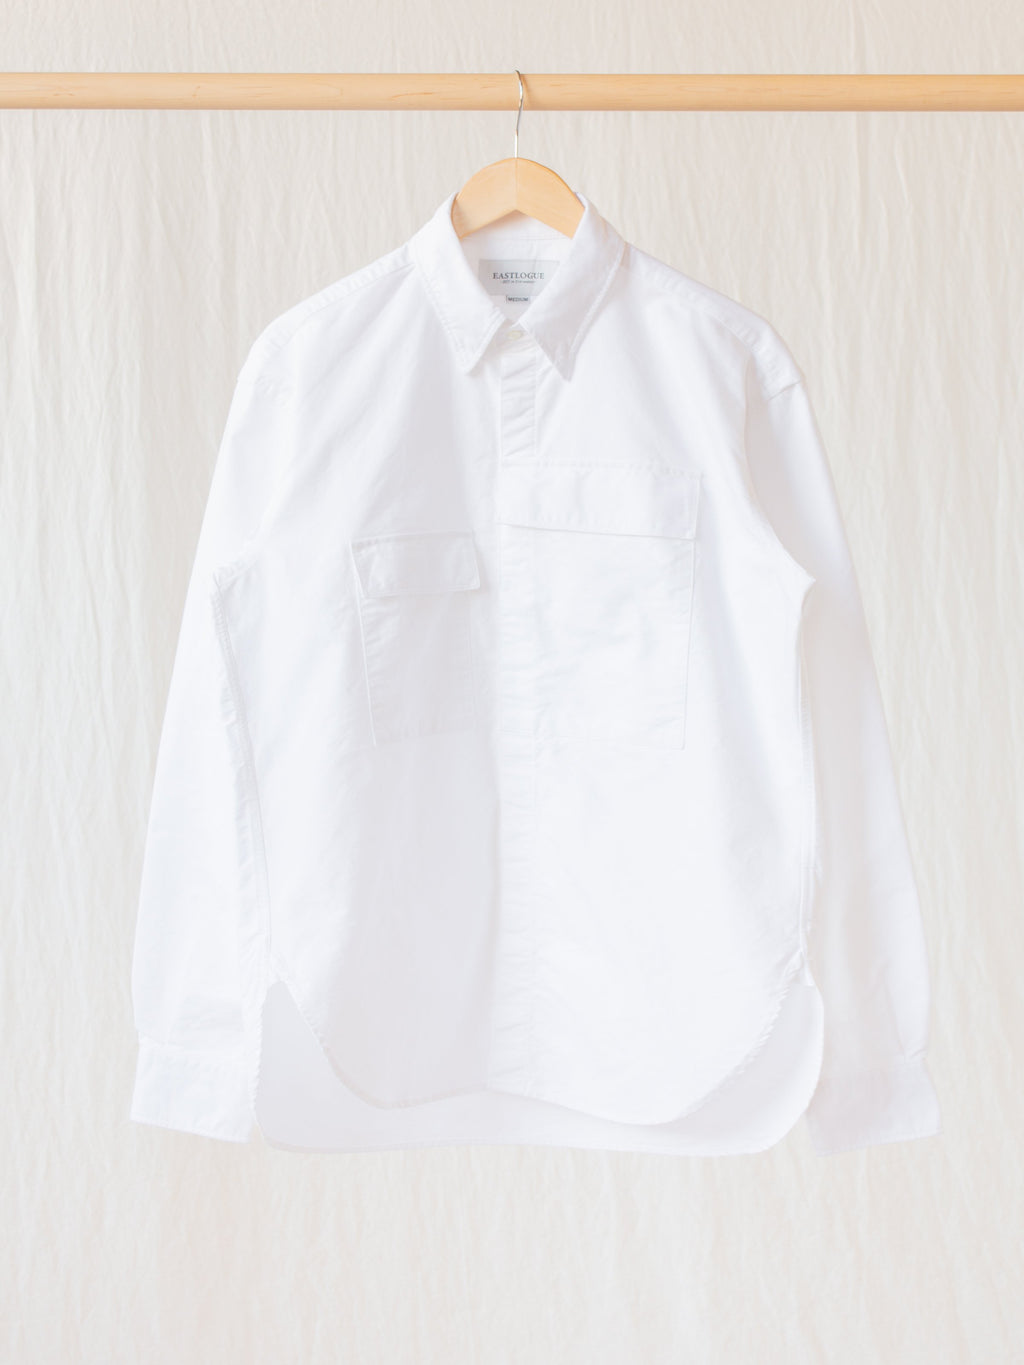 CBA Shirt - White Oxford